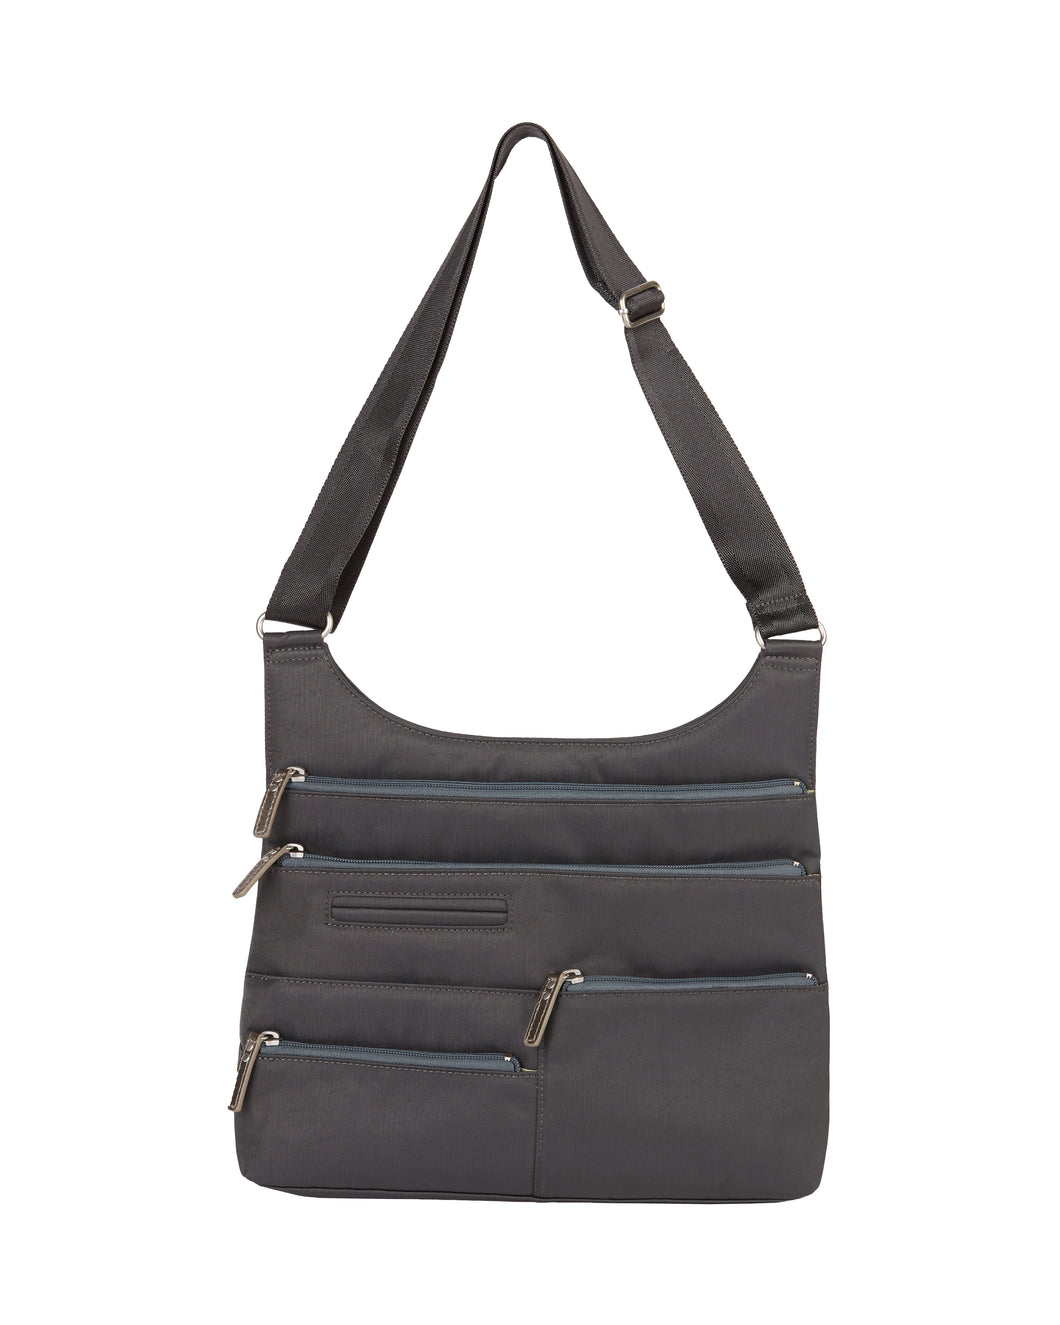 Highway Teela Medium Multi - Pocket bag / Rock grey